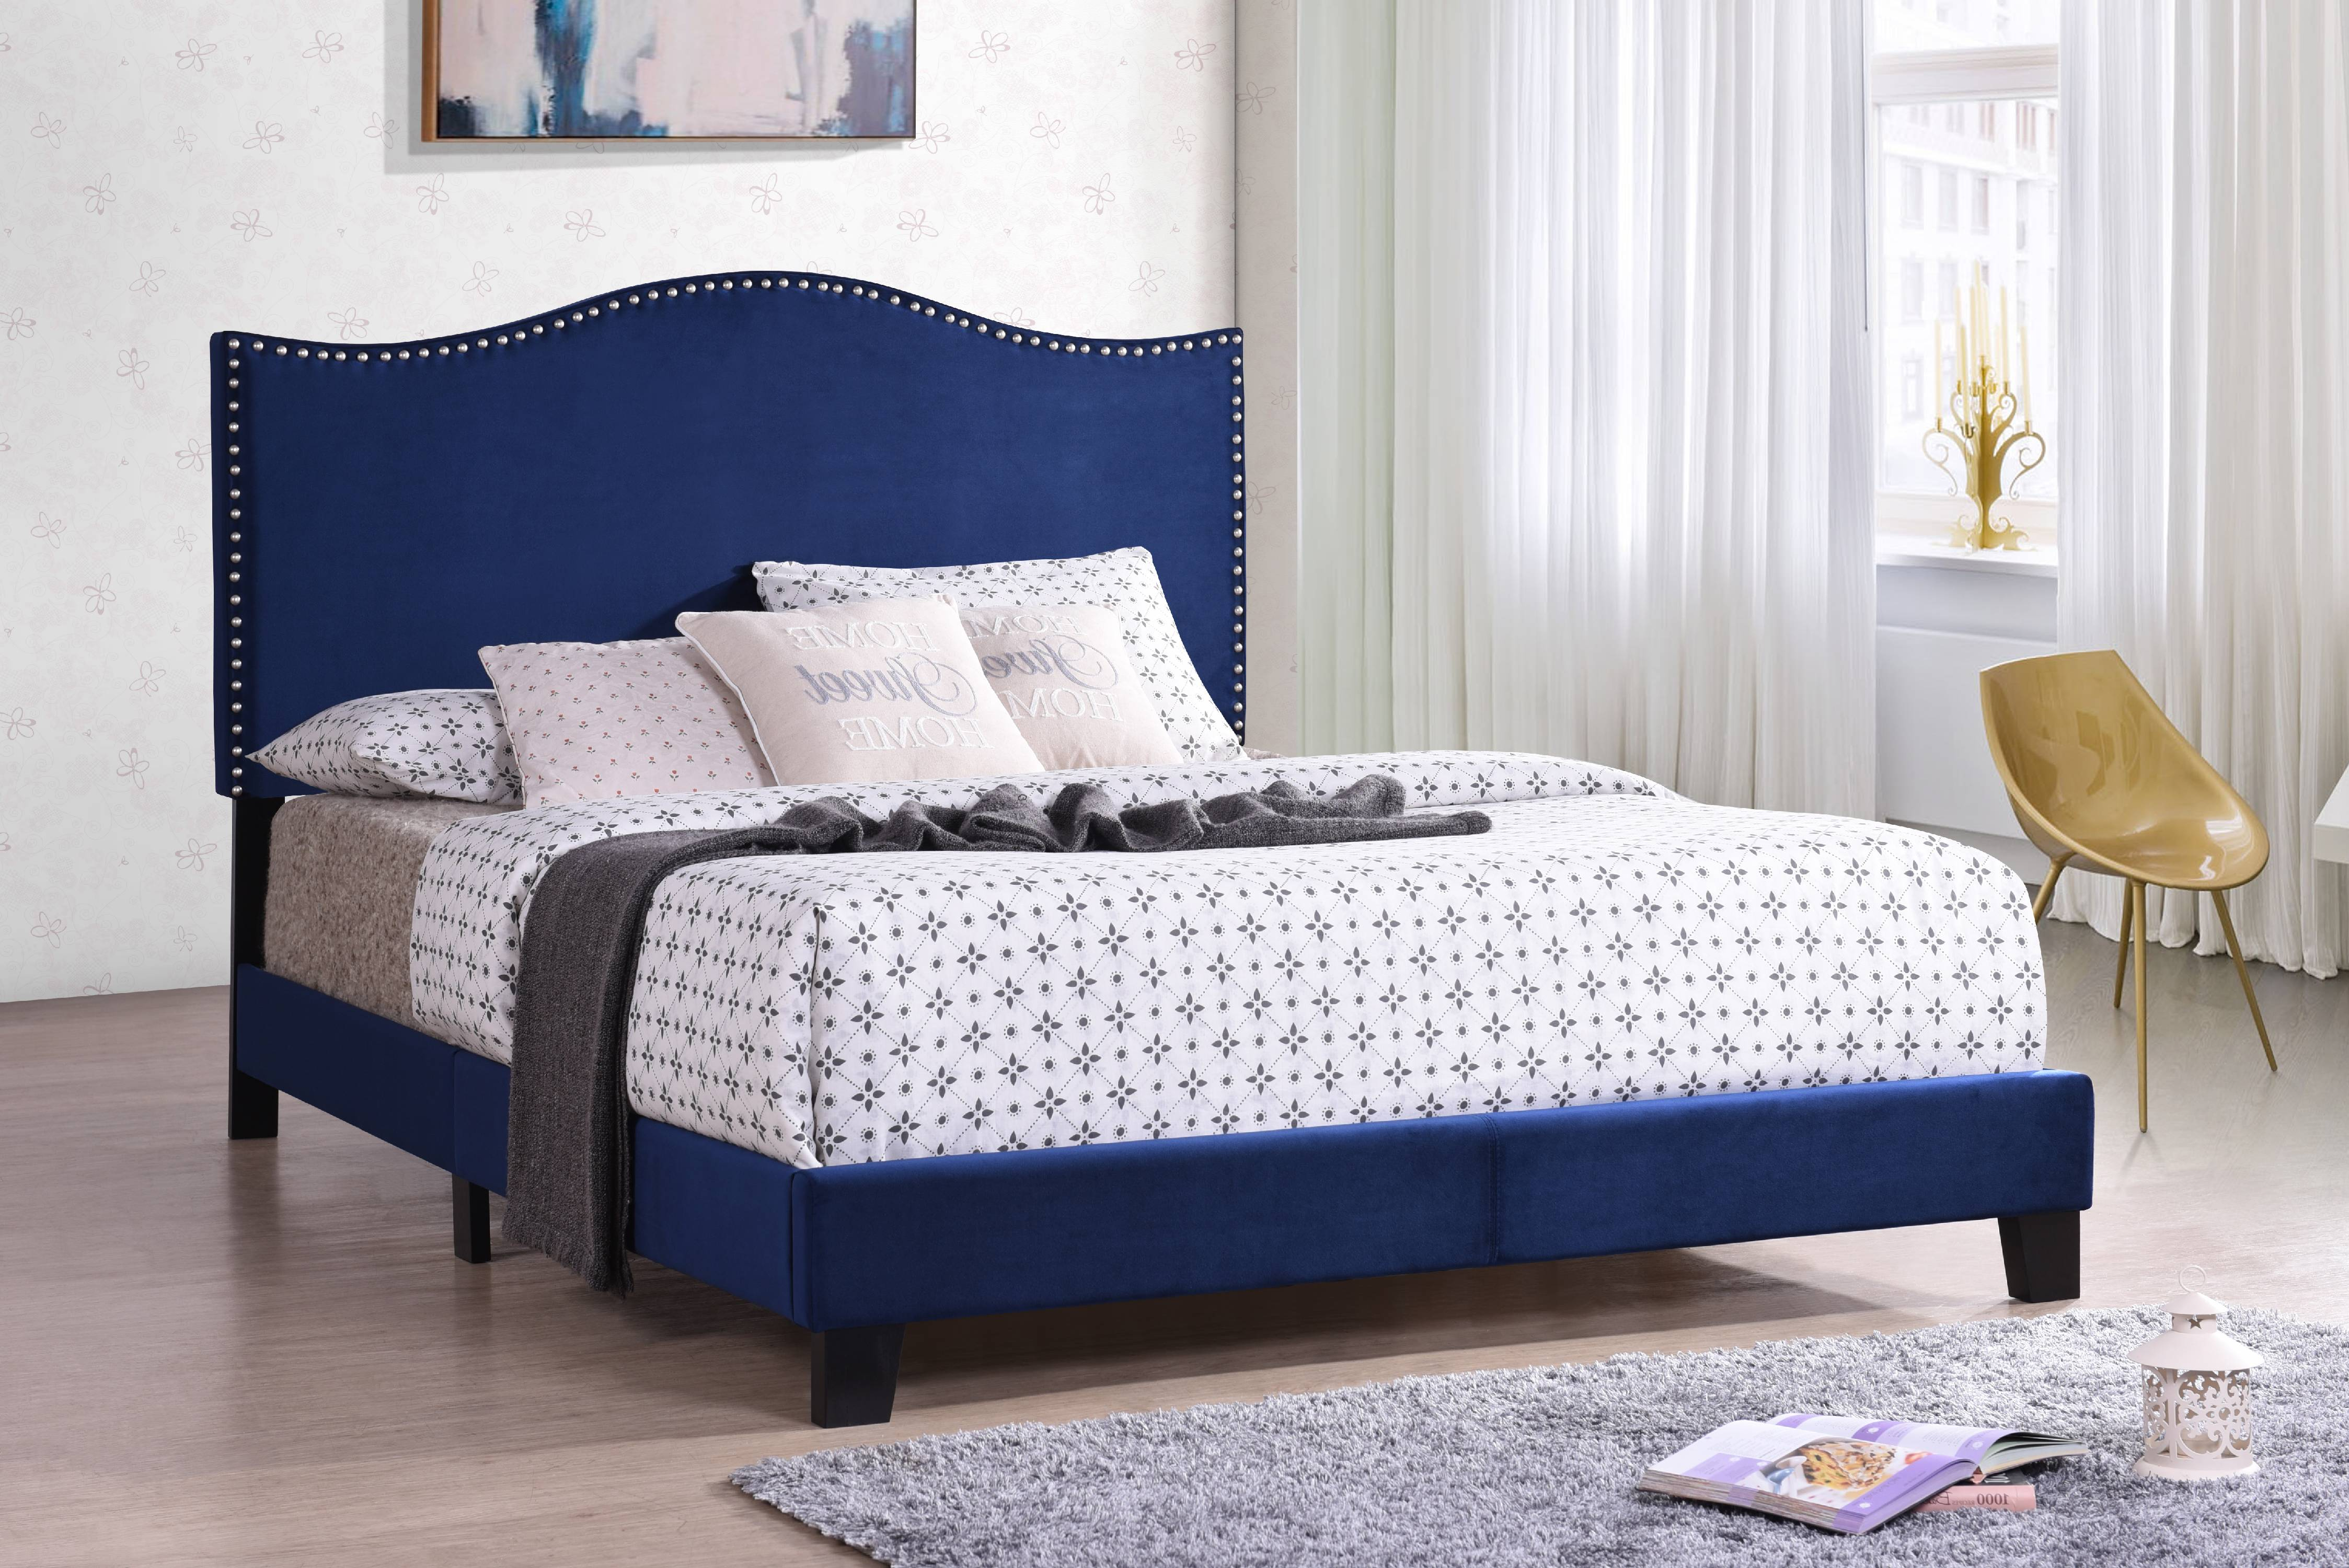 Skye Full Size Blue Velvet Nailhead Transitional Upholstered Panel Bed With Solid Wood Legs (Headboard, Footboard,... by Pilaster Designs